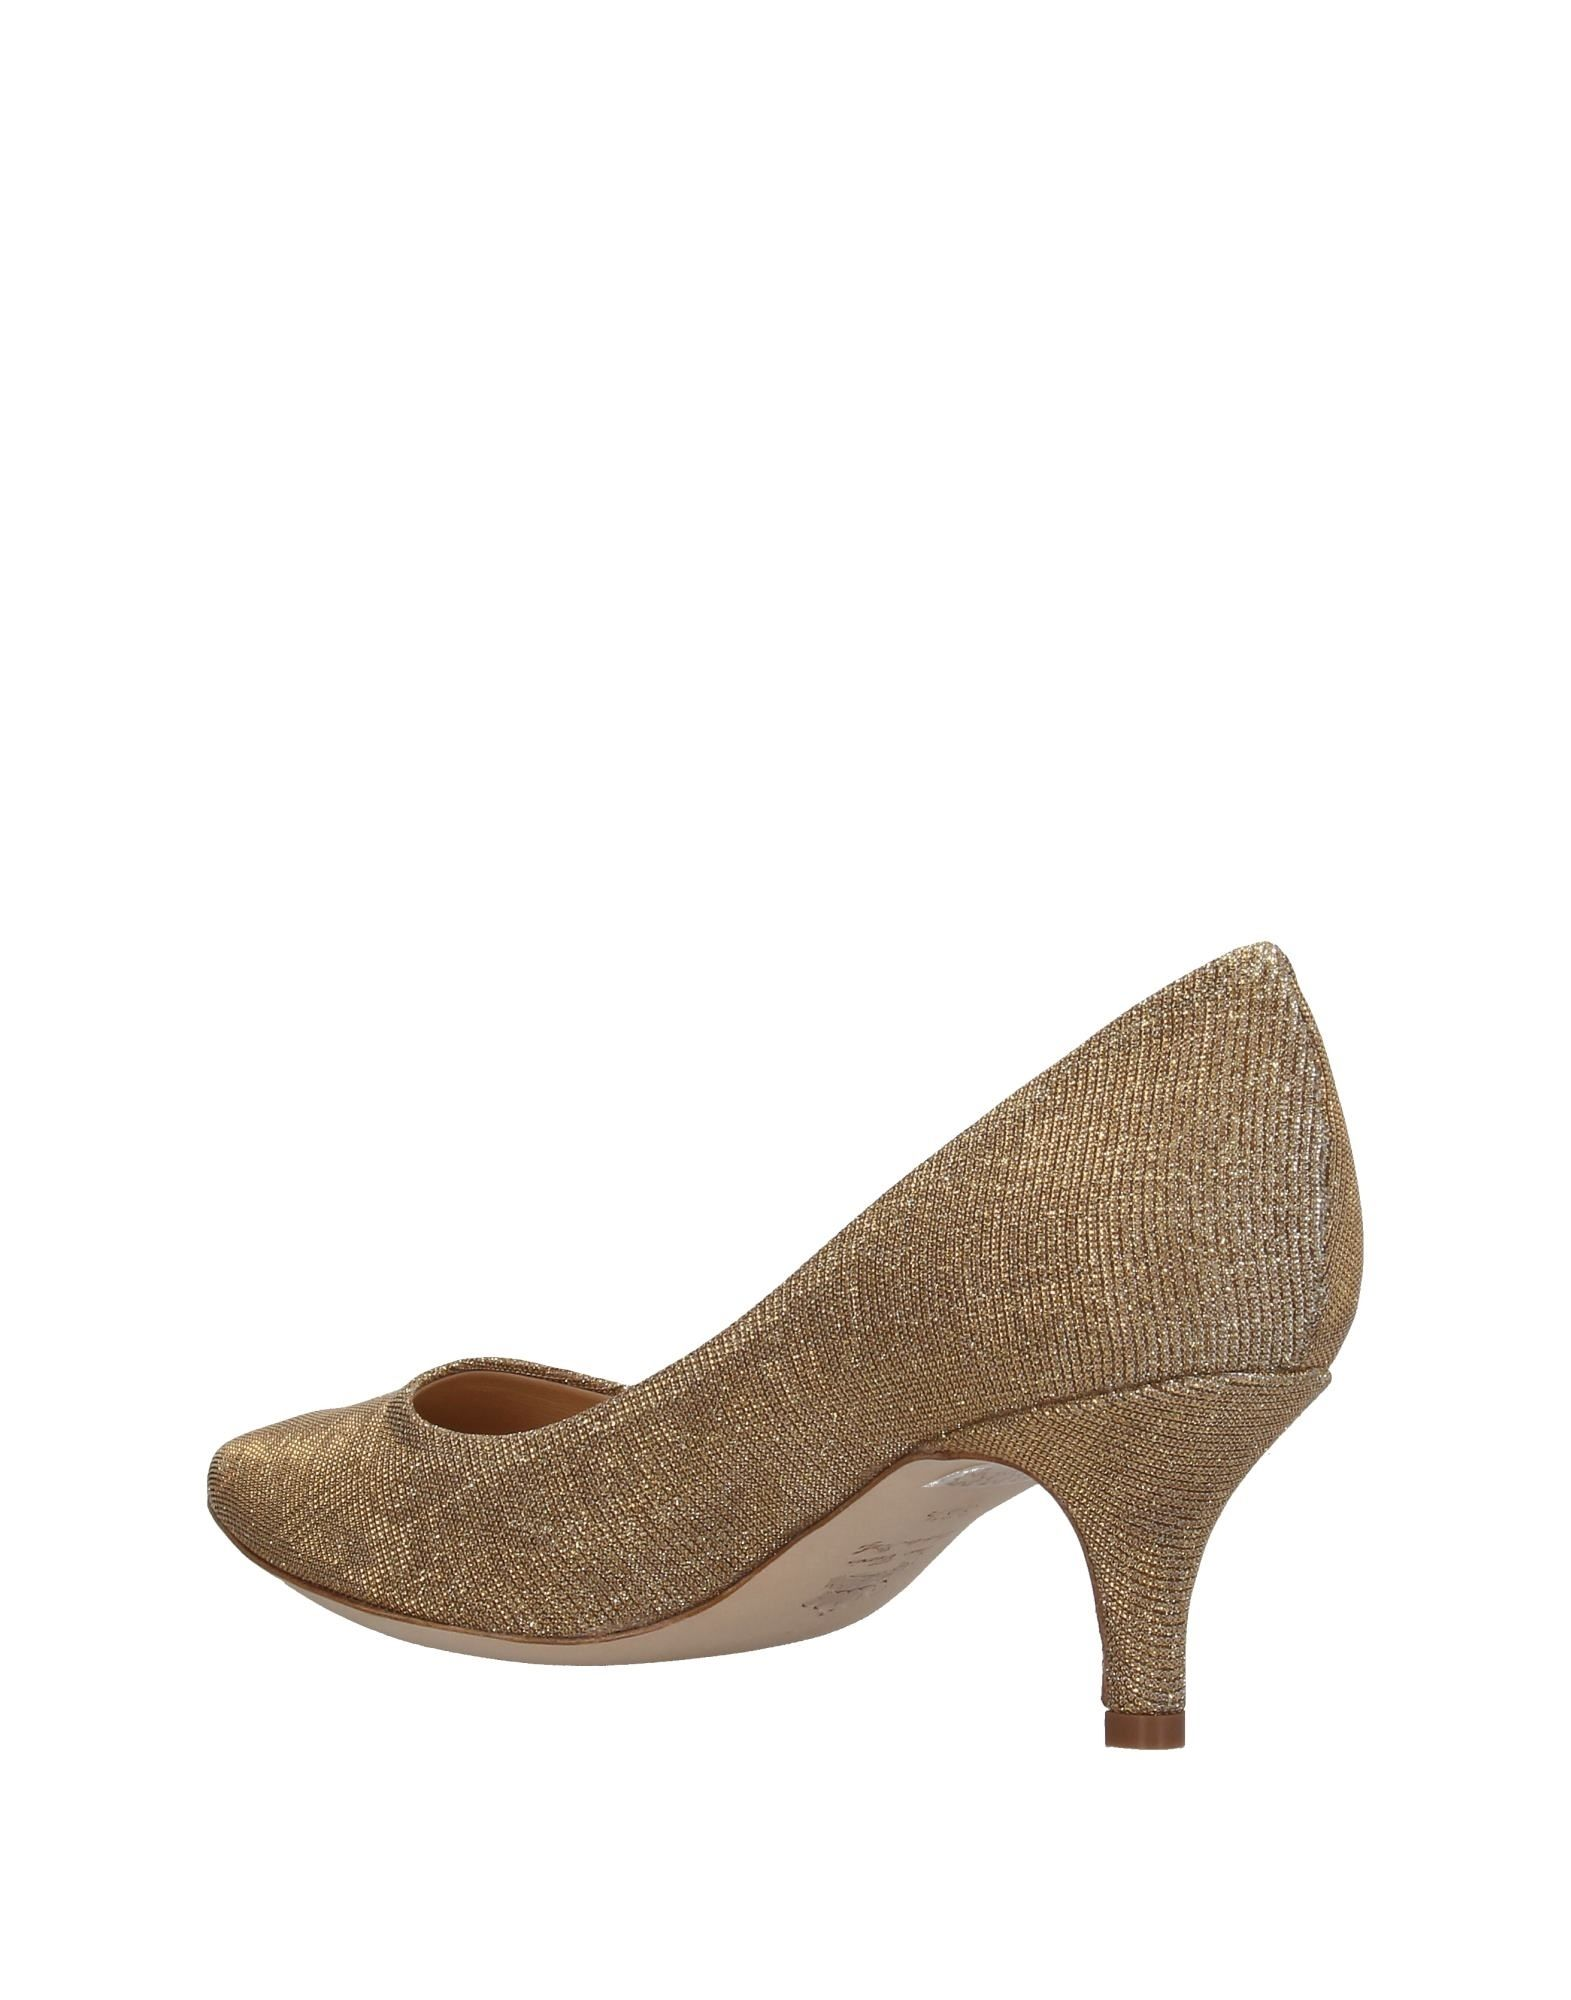 Escarpins Righi Femme - Escarpins Righi sur